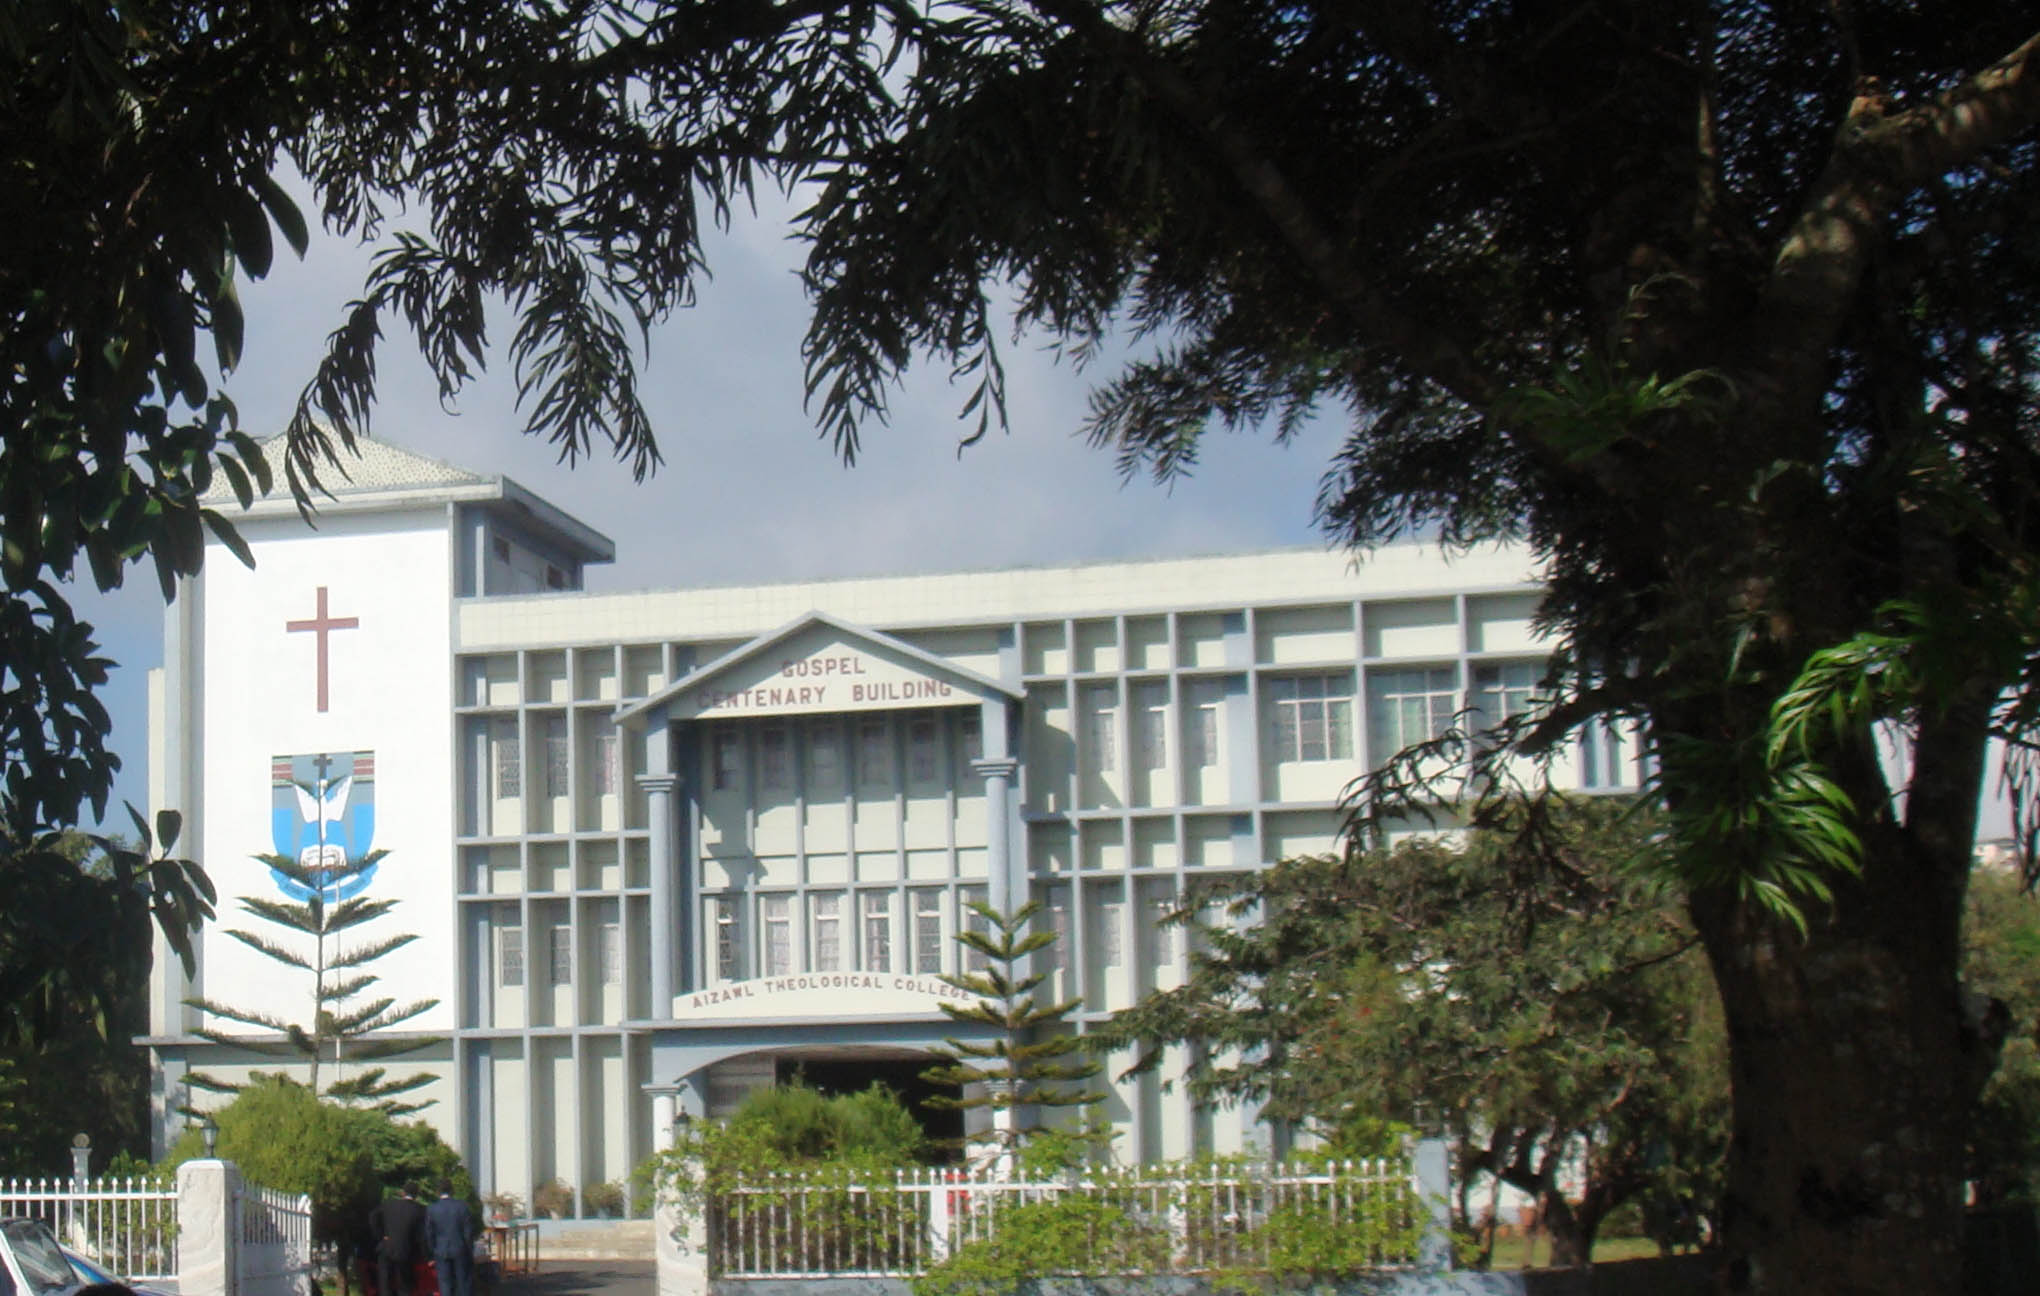 education in mizoram Mizoram university is the ugc approved university in mizoram and northeast india mizoram university offers many distance education courses and correspondence courses online.